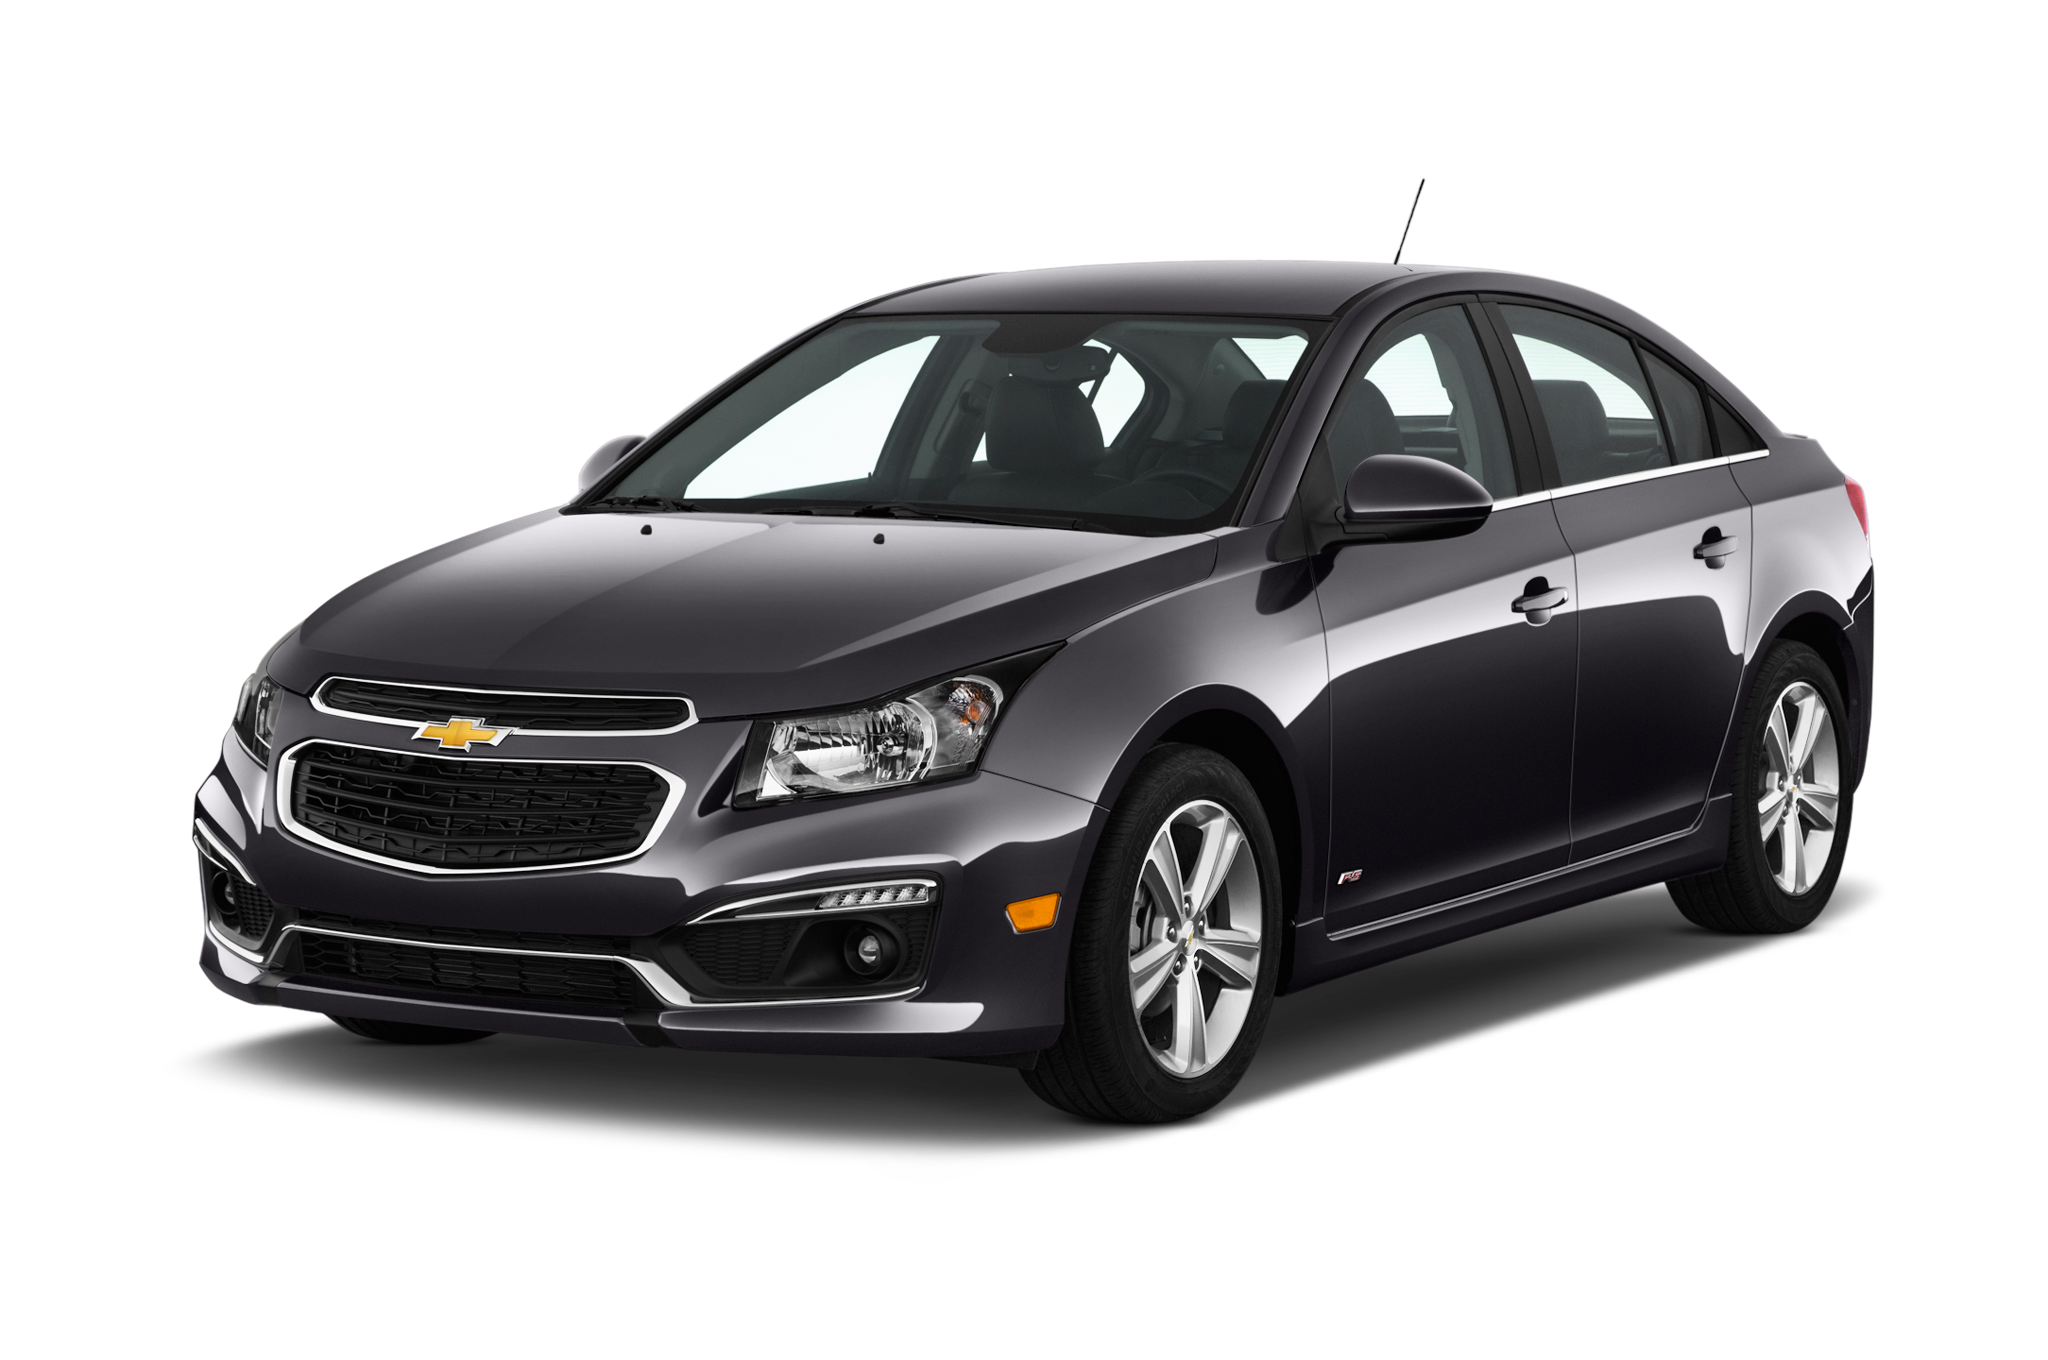 2016 chevrolet cruze limited 1lt manual specs and features. Black Bedroom Furniture Sets. Home Design Ideas